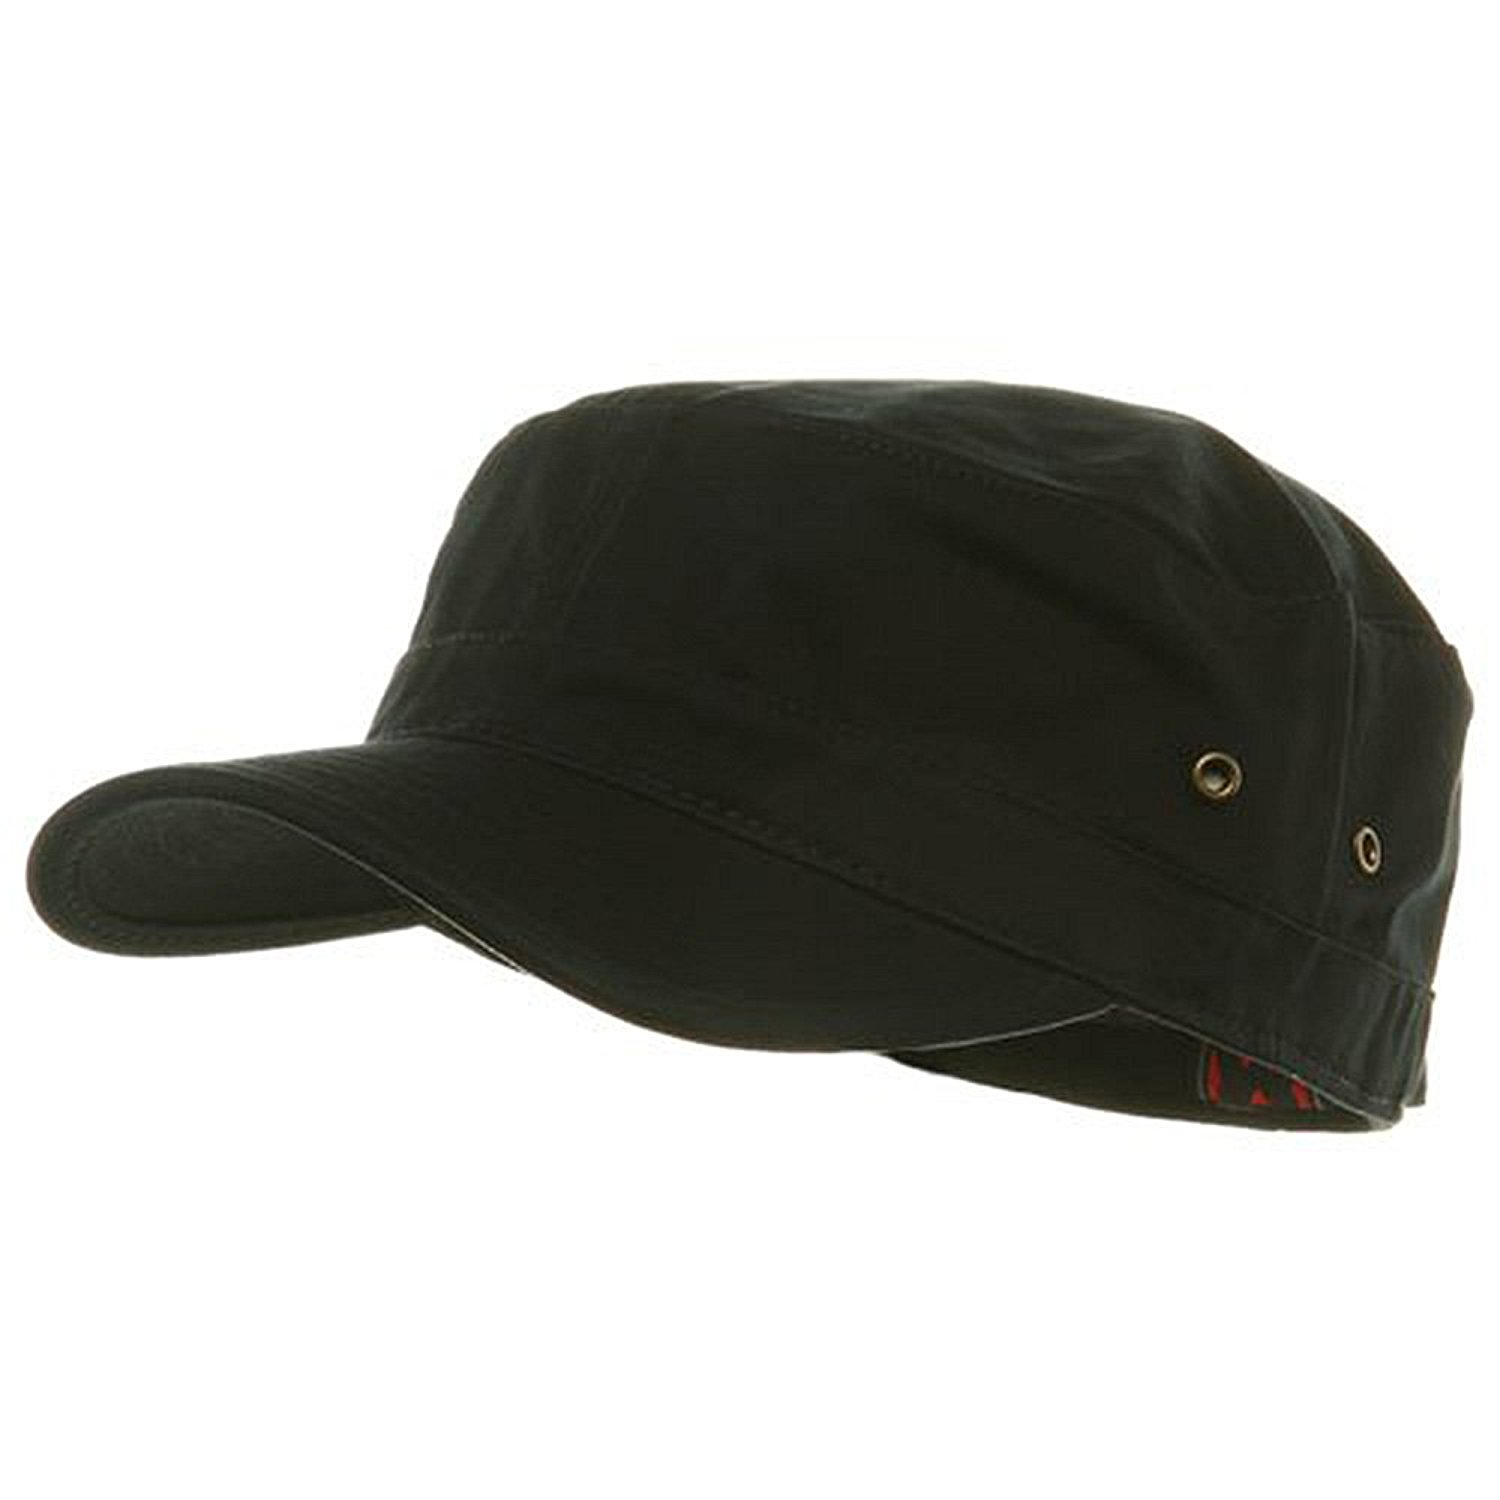 Free photo  Military Cap and Old Camera - Object b1c0c0001ef